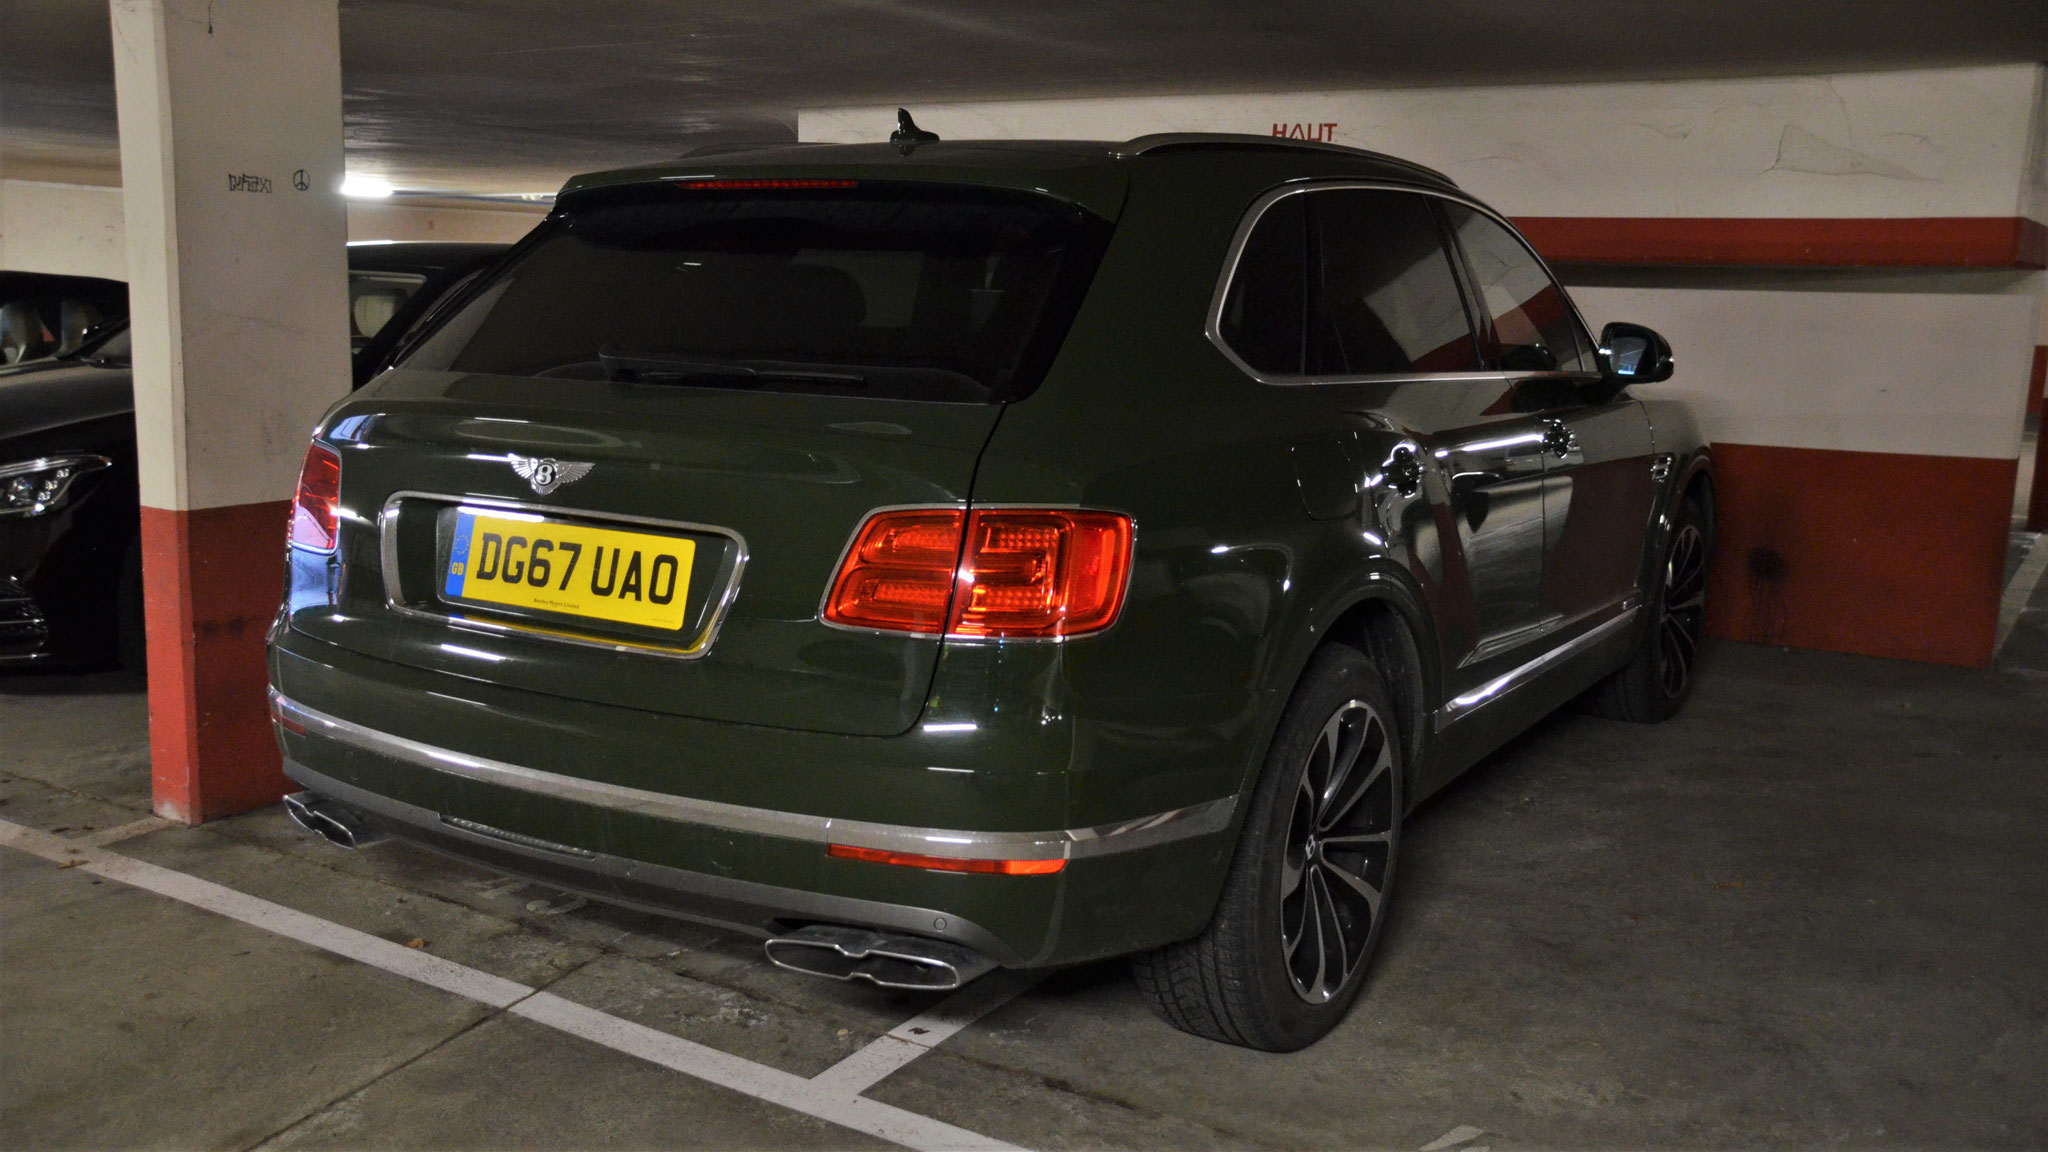 Bentley Bentayga - DG67-UAO (GB)